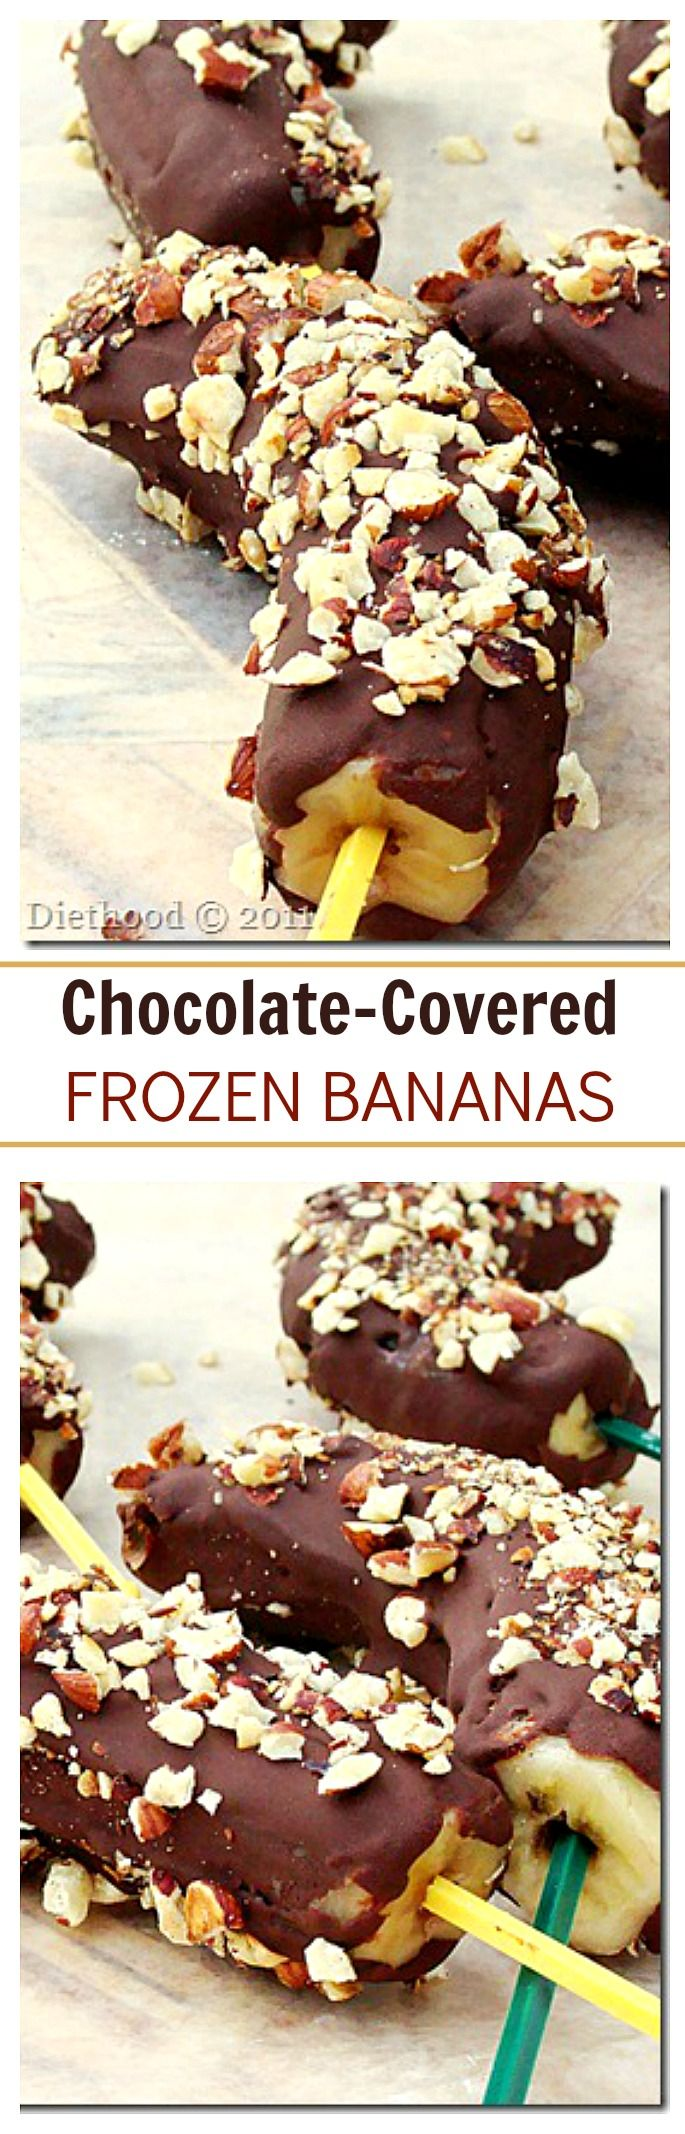 HOW TO MAKE Chocolate-Dipped Frozen Bananas! SO simple and delicious!